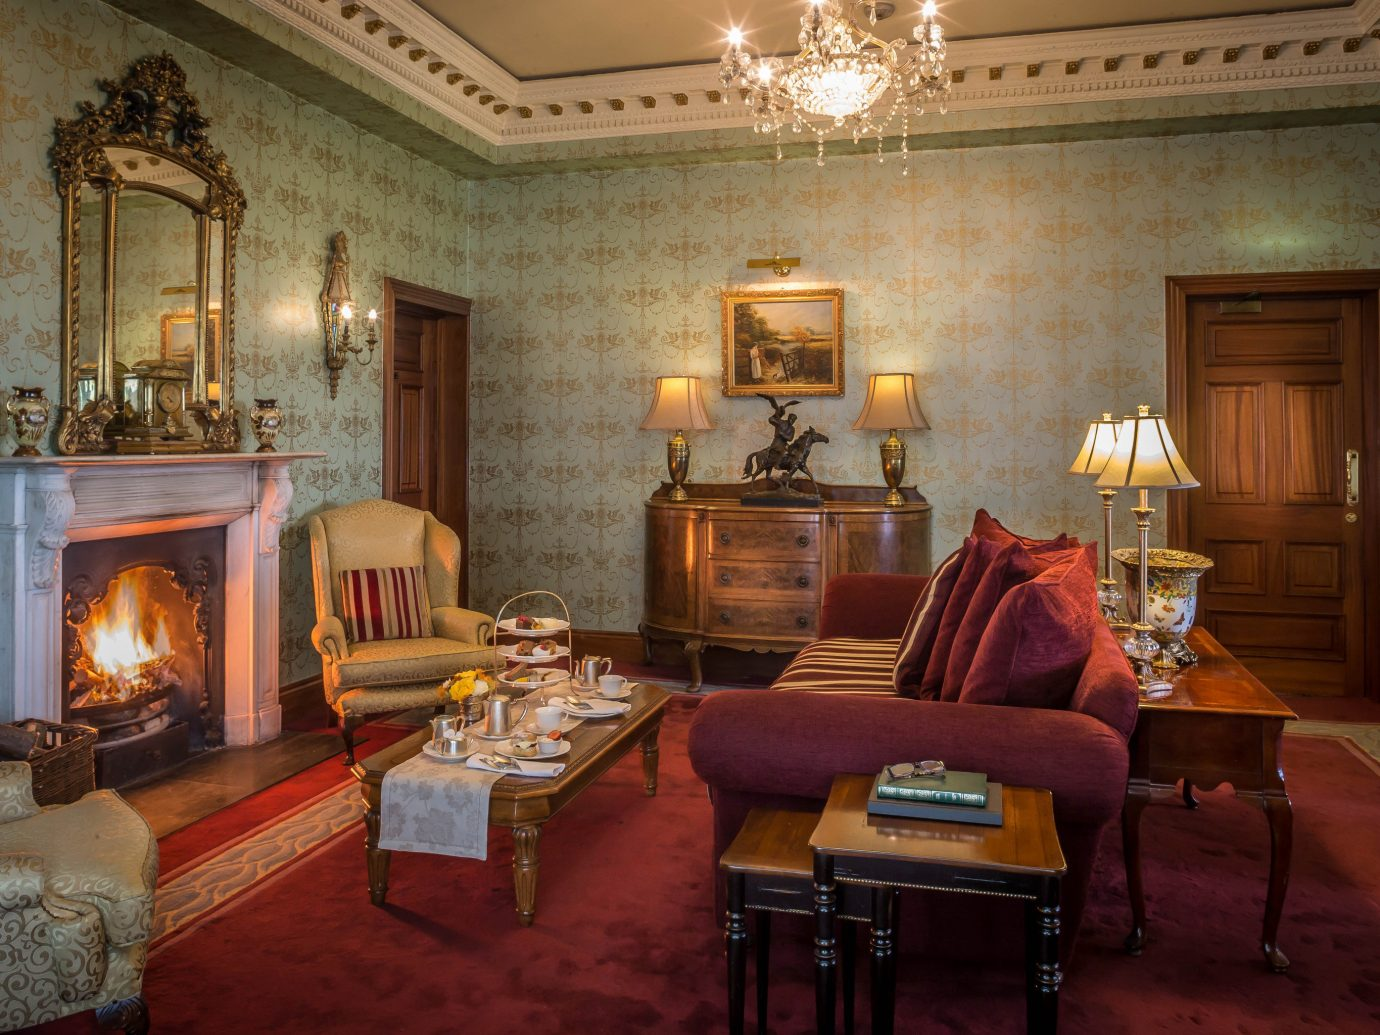 Dublin Ireland Trip Ideas indoor floor wall room Living living room Fireplace fire interior design ceiling home estate furniture Suite real estate hearth house area